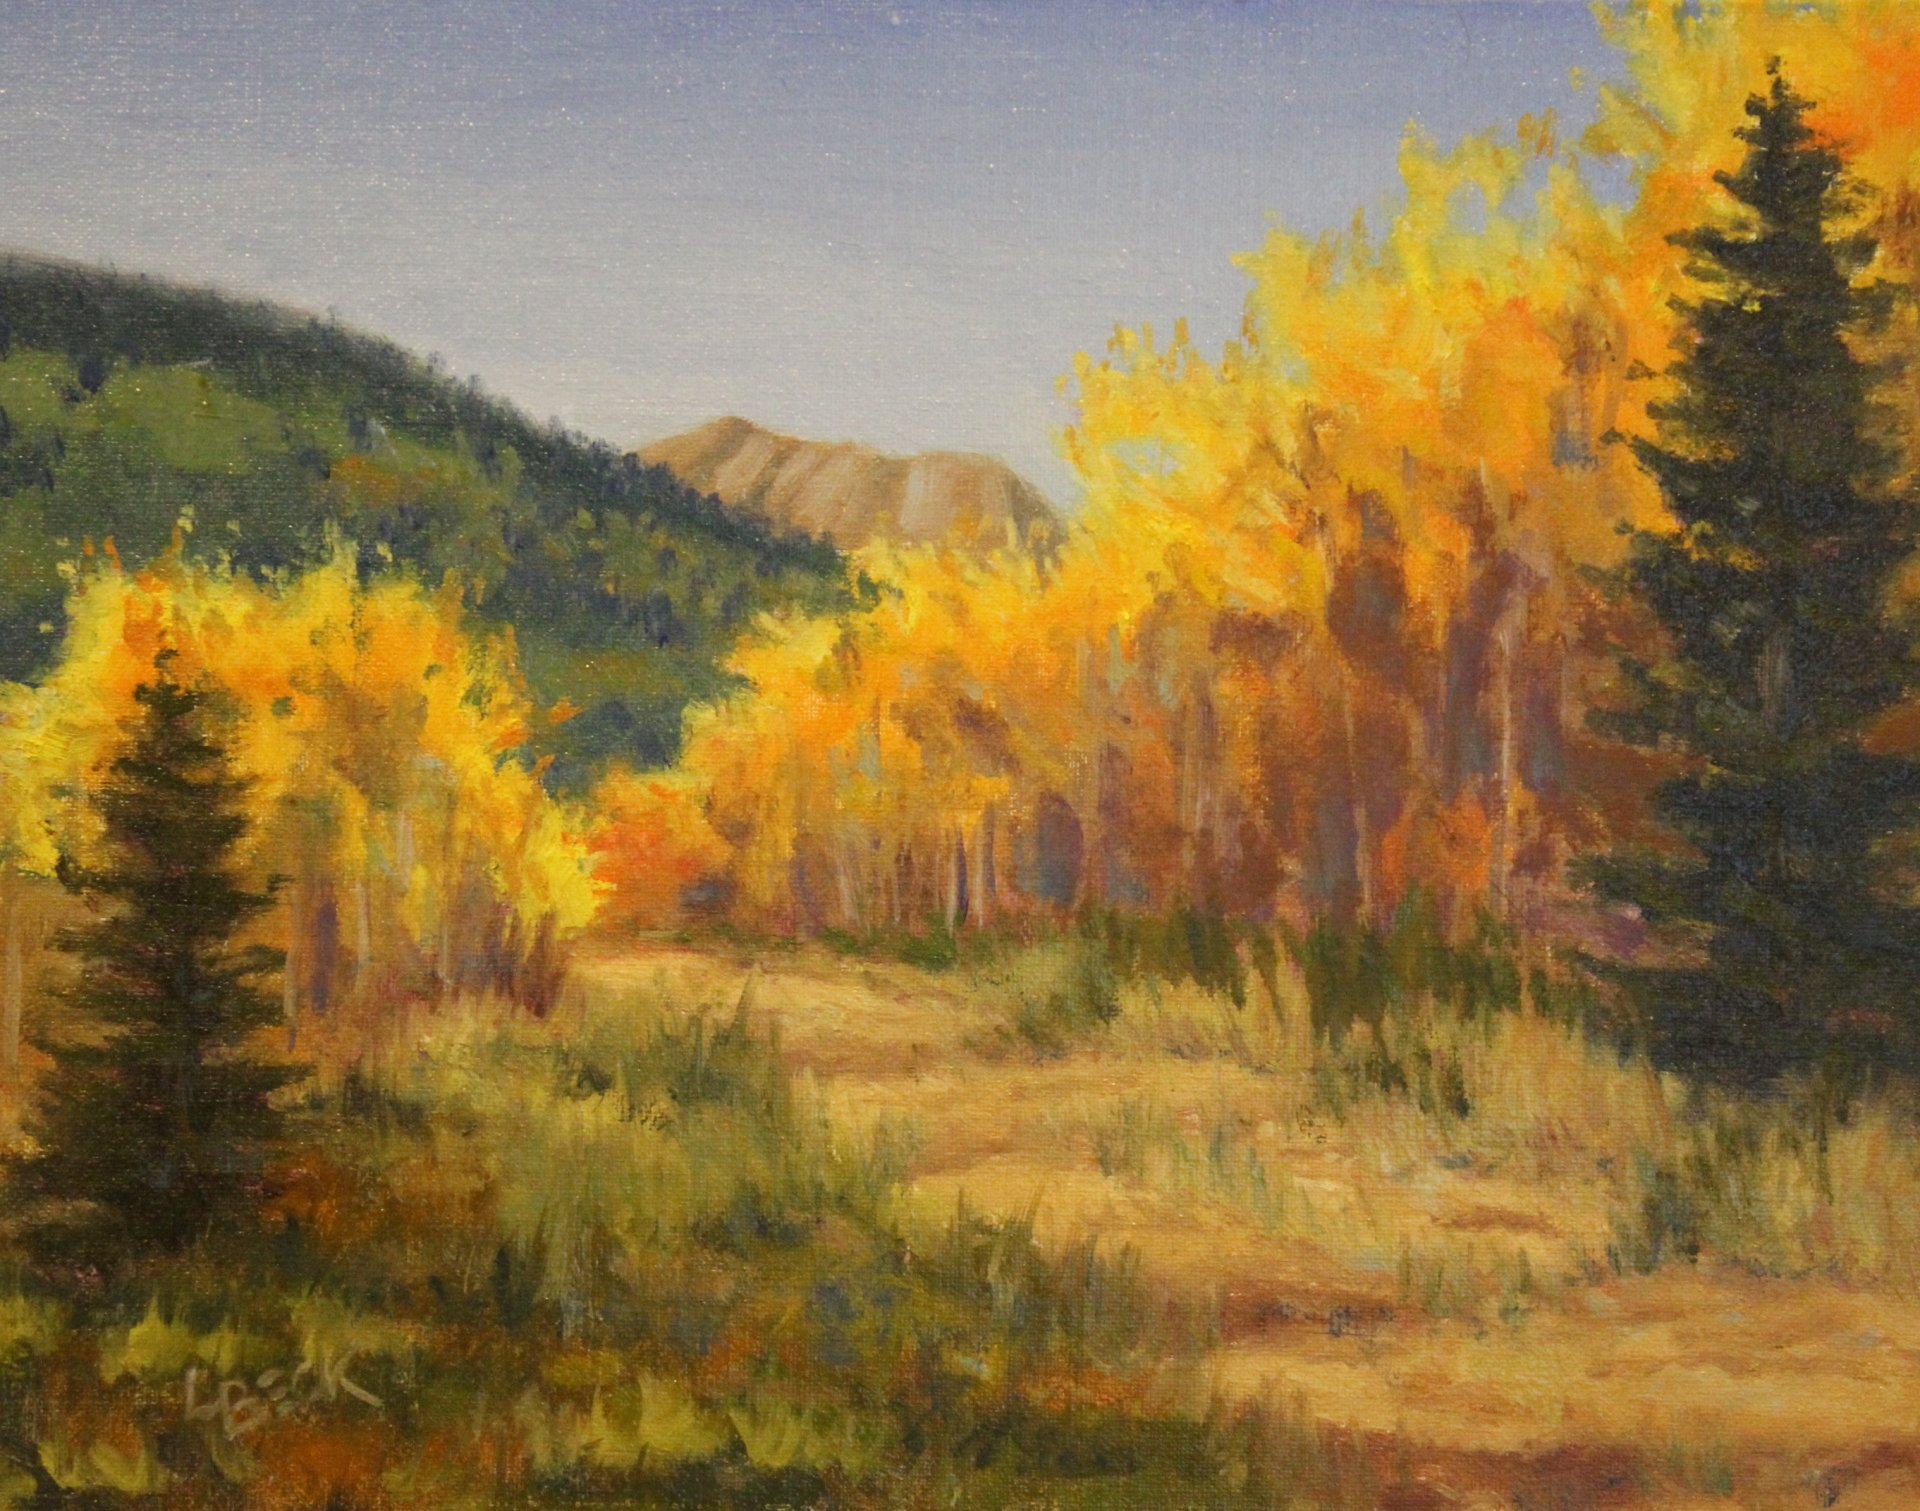 Monthly Art Exhibitions in Colorado Springs, CO - Academy Art ...